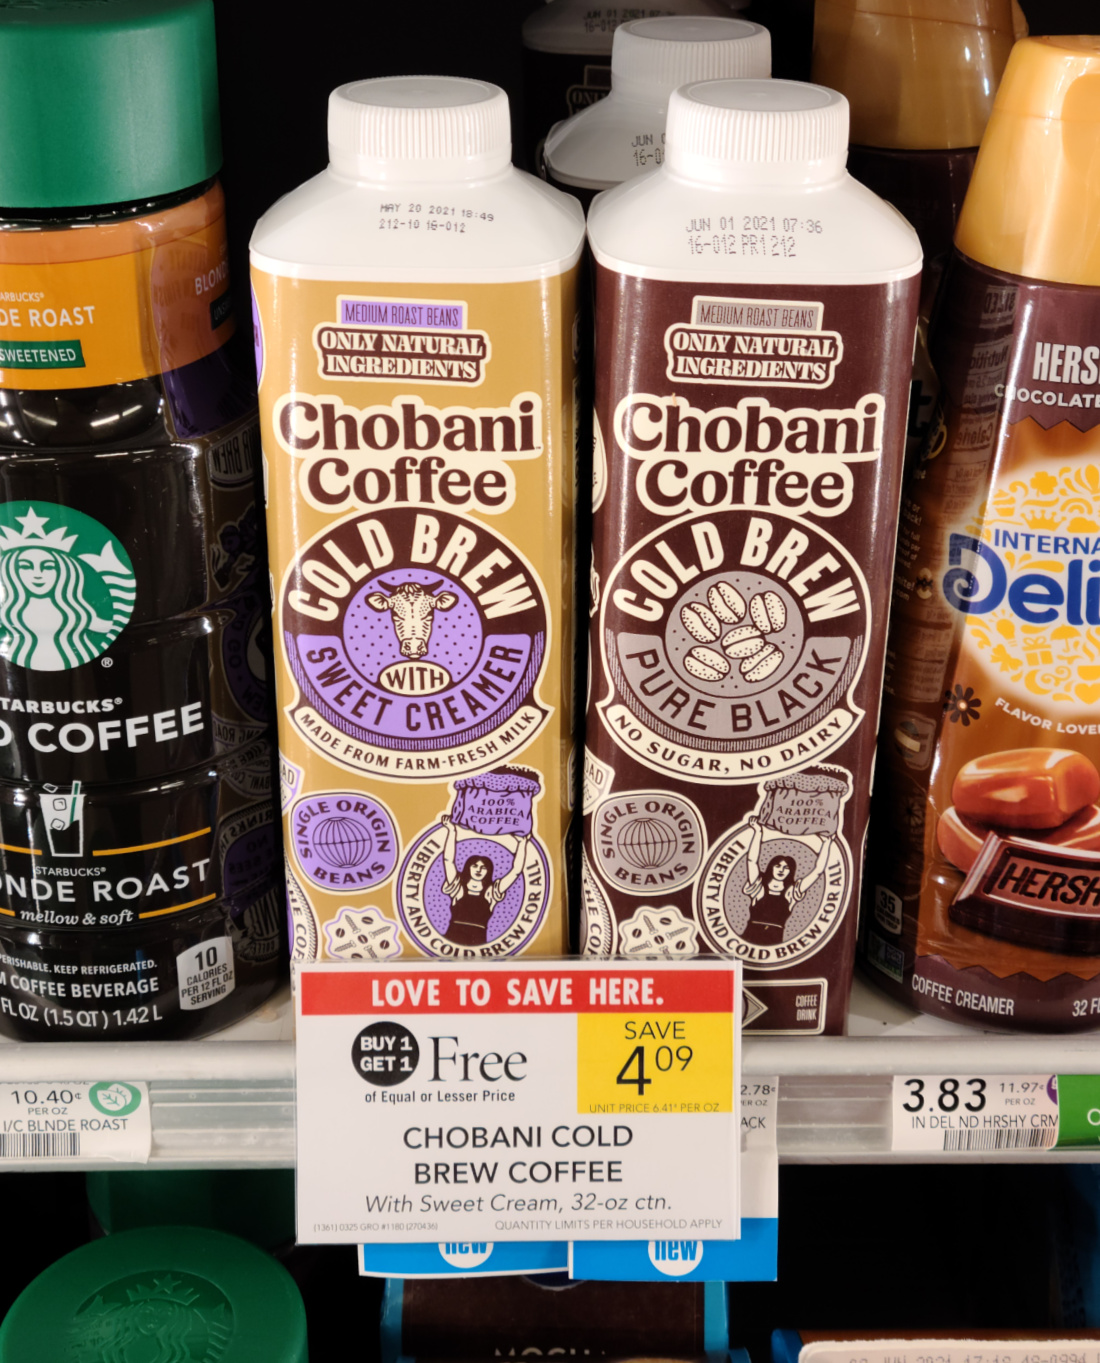 Chobani Cold Brew Coffee As Low As FREE At Publix on I Heart Publix